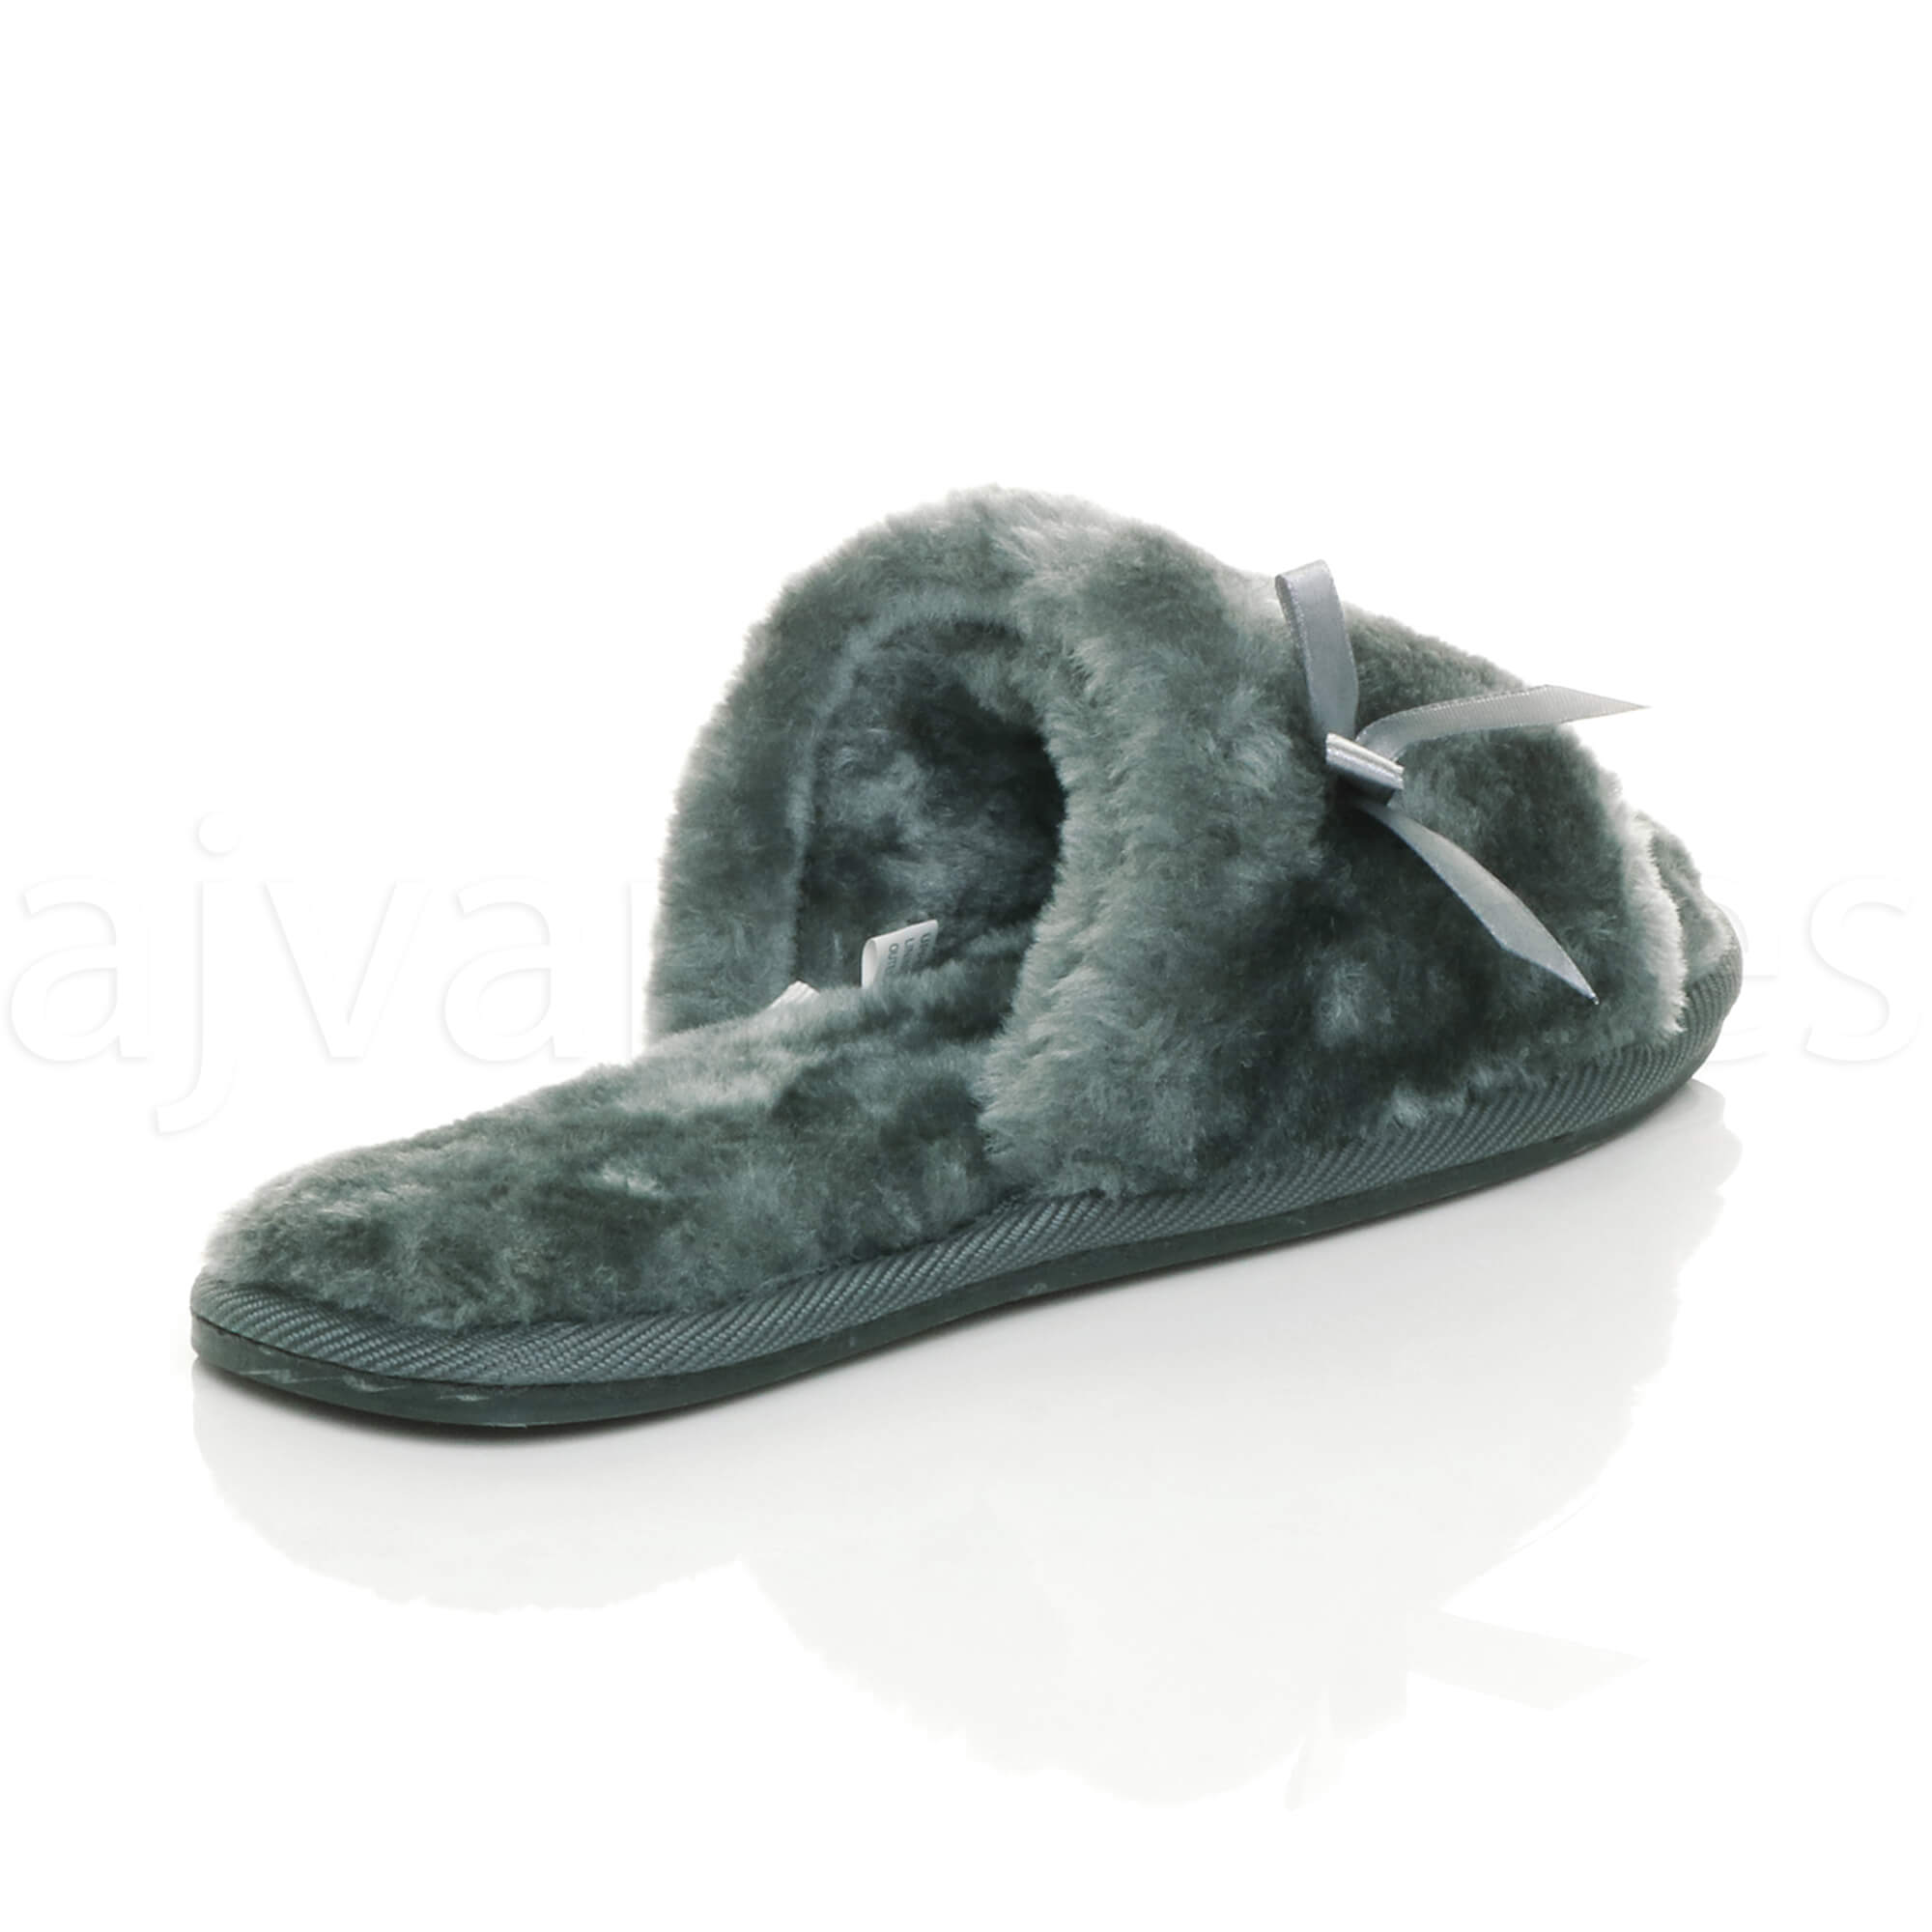 WOMENS-LADIES-FLAT-PEEP-TOE-BOW-LUXURY-COSY-FUR-LINED-SLIP-ON-SLIPPERS-SIZE thumbnail 29